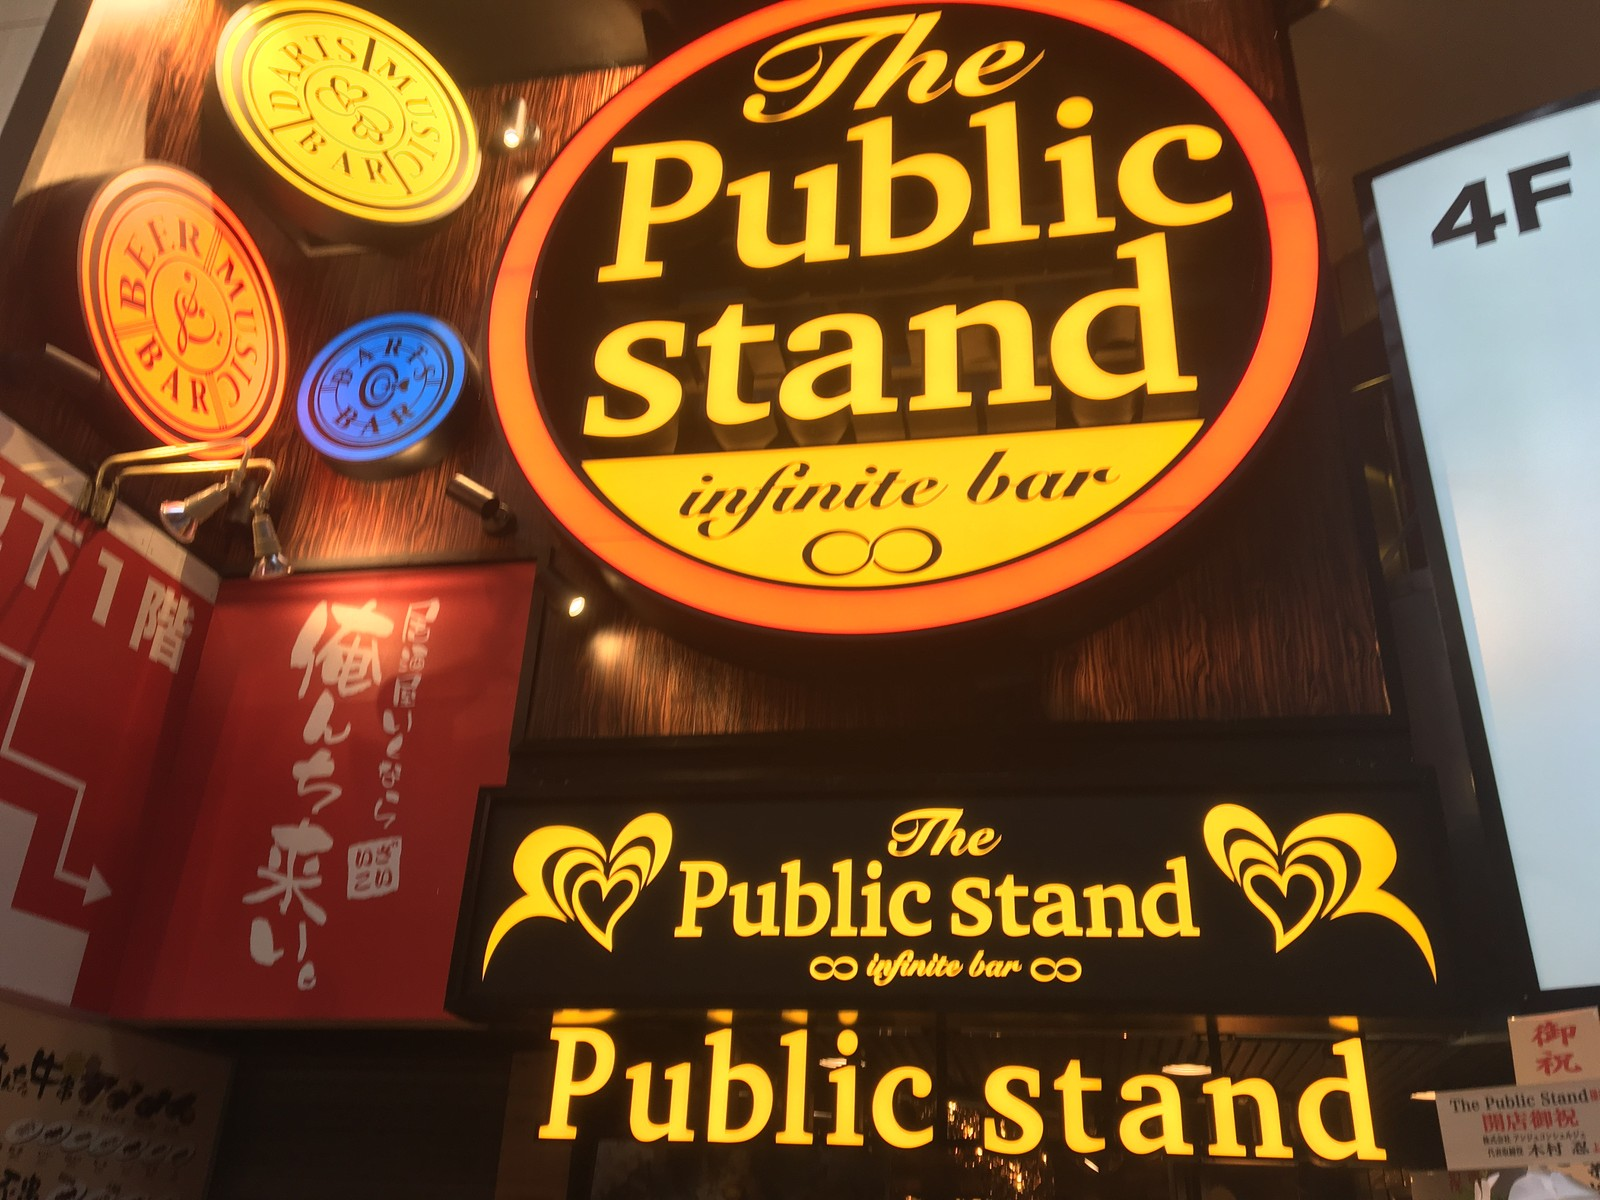 The Public stand 阪急東通り店